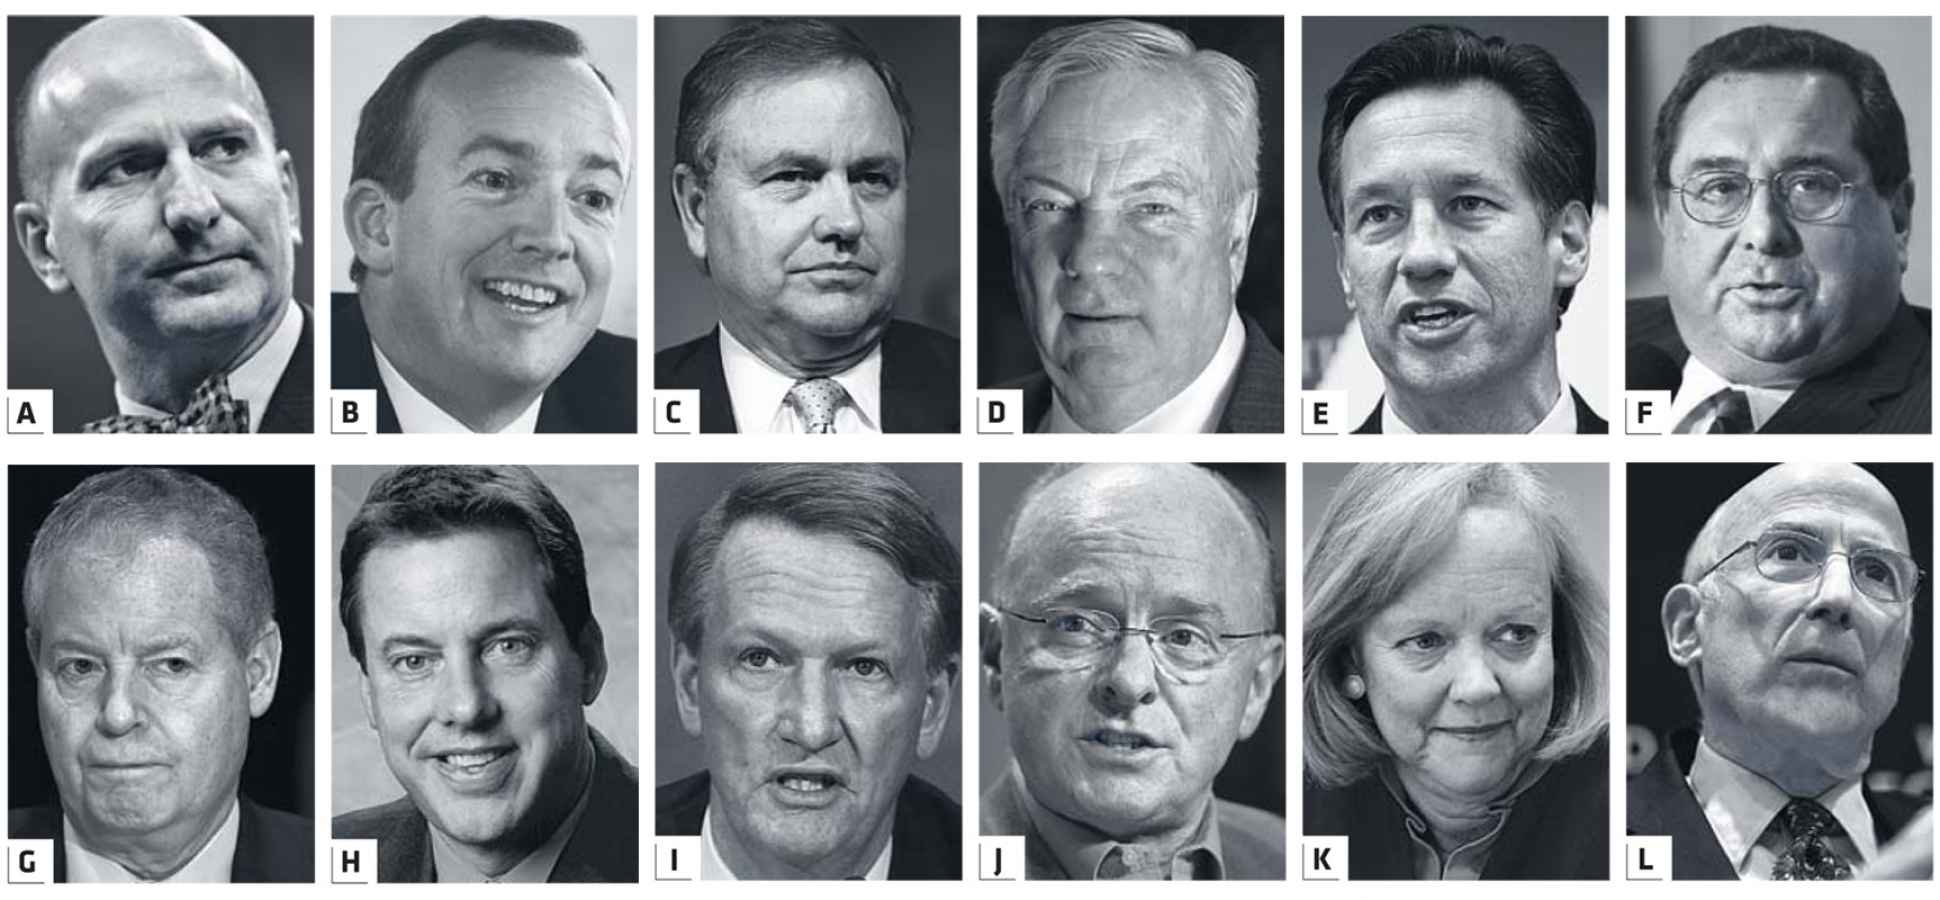 Faces of Success: You Can Judge a Leader's Appearance